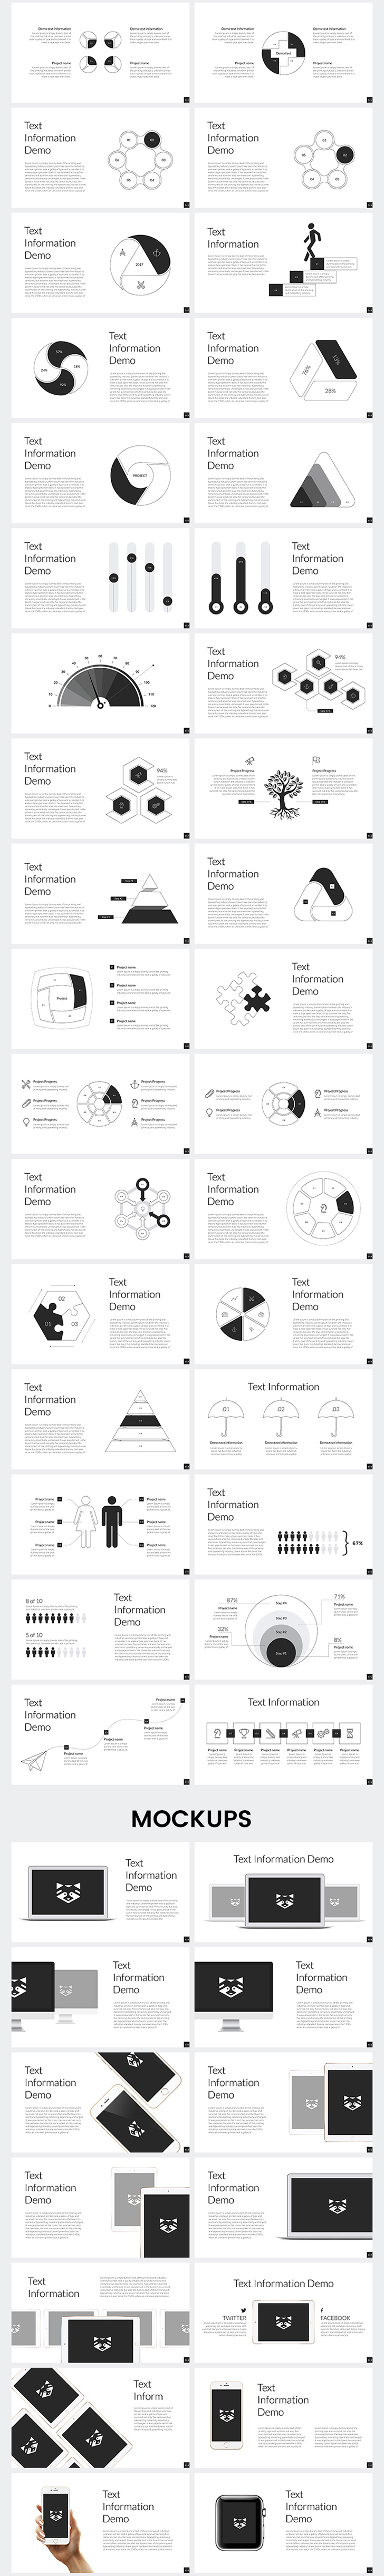 """Corporate Report"""" PowerPoint template - Download Now!"""